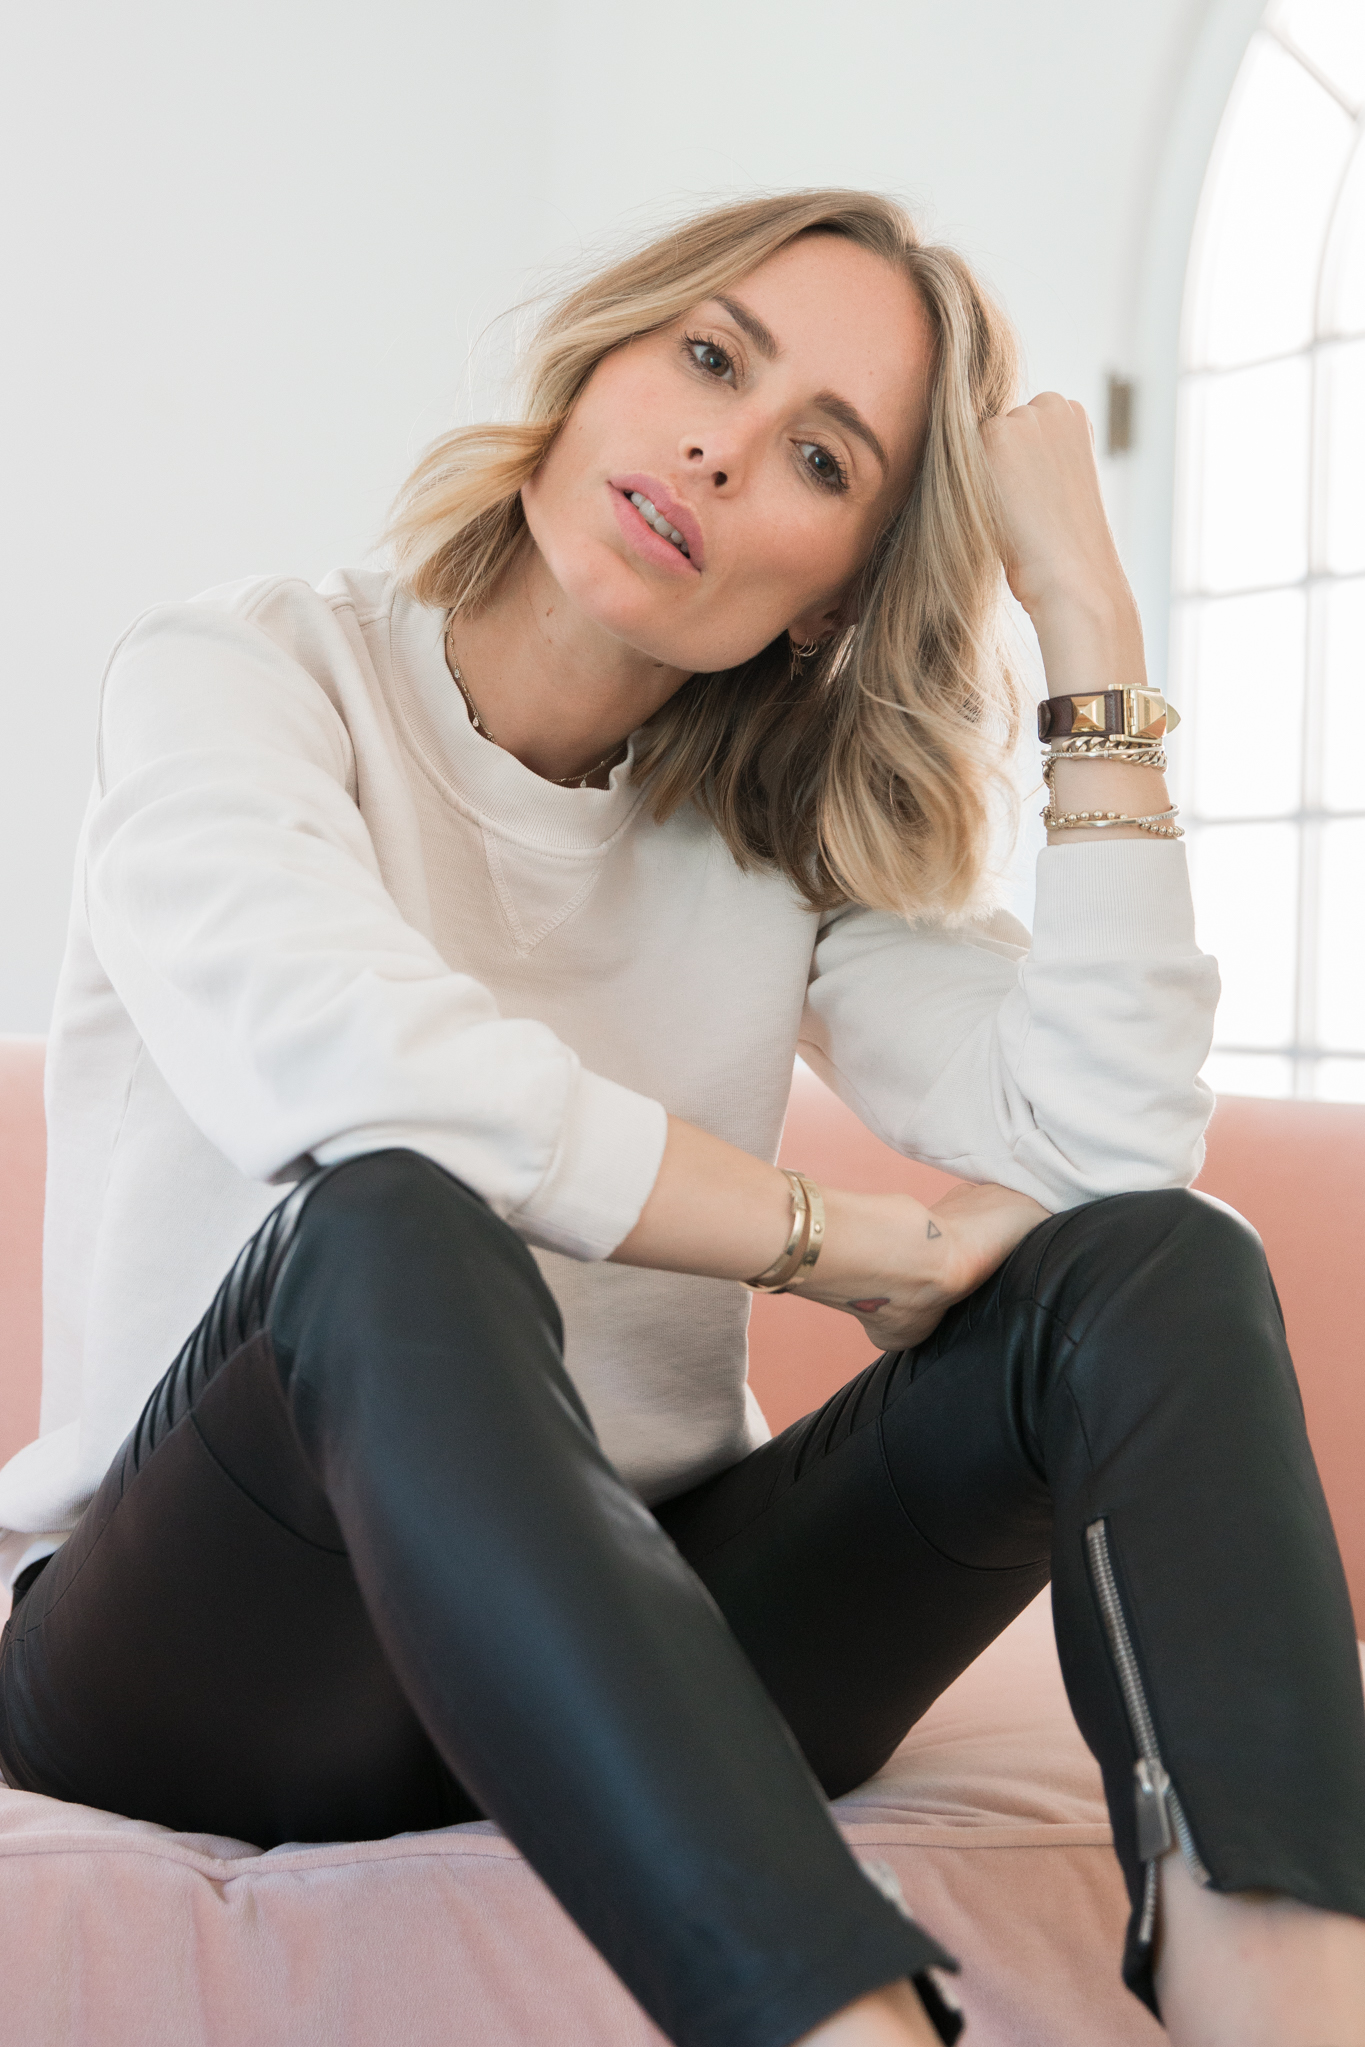 Anine Bing talks to The Lifestyle Edit about going from blogger to founder